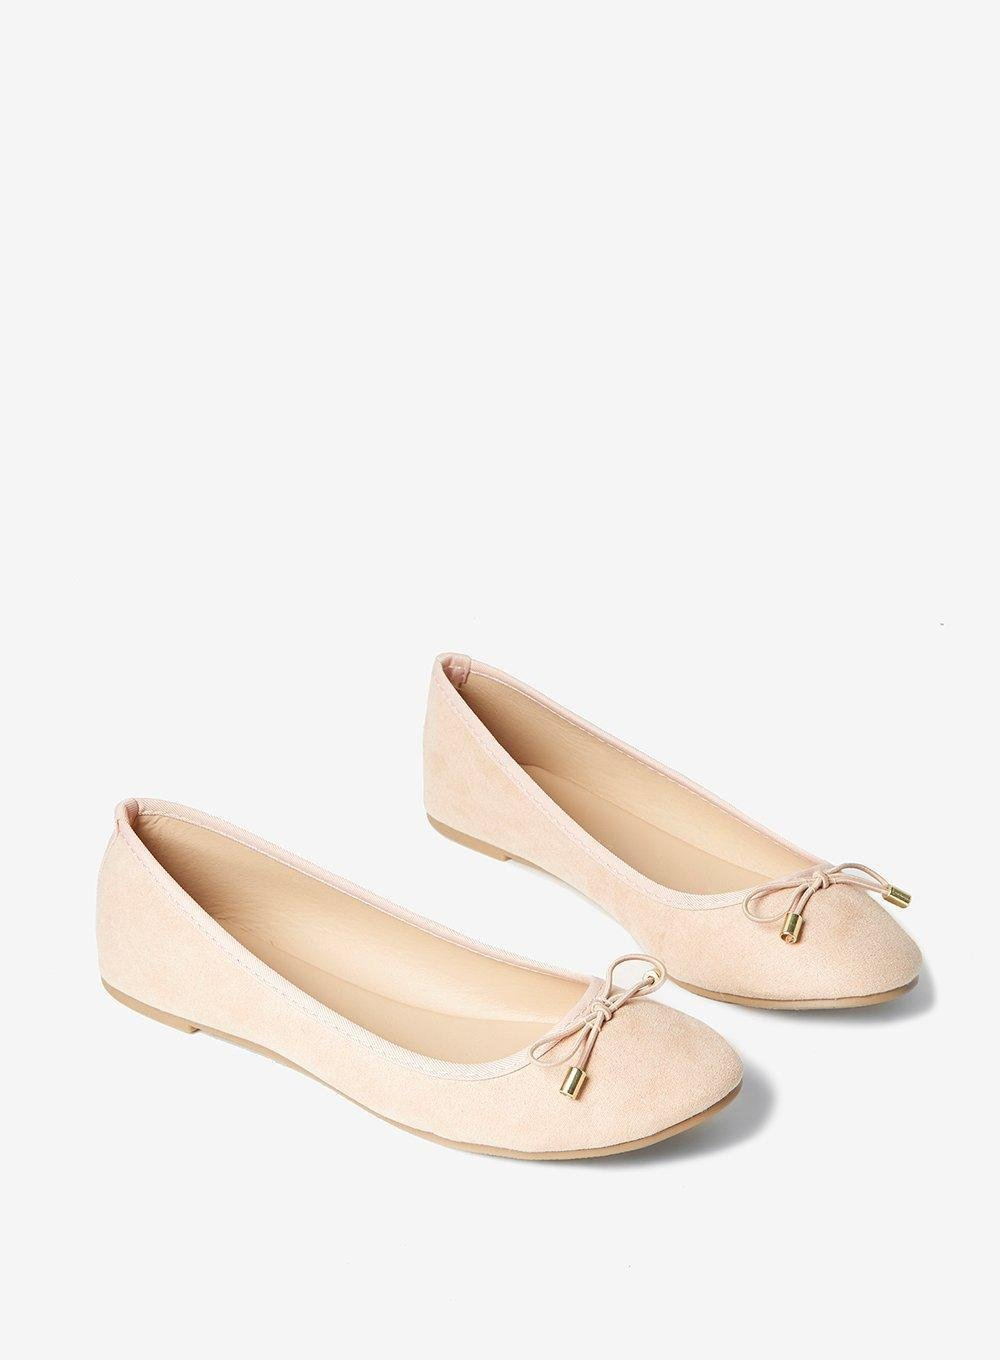 e4c5562a01a9 Gallery. Previously sold at  Dorothy Perkins · Women s Nude Ballerina Pumps  ...